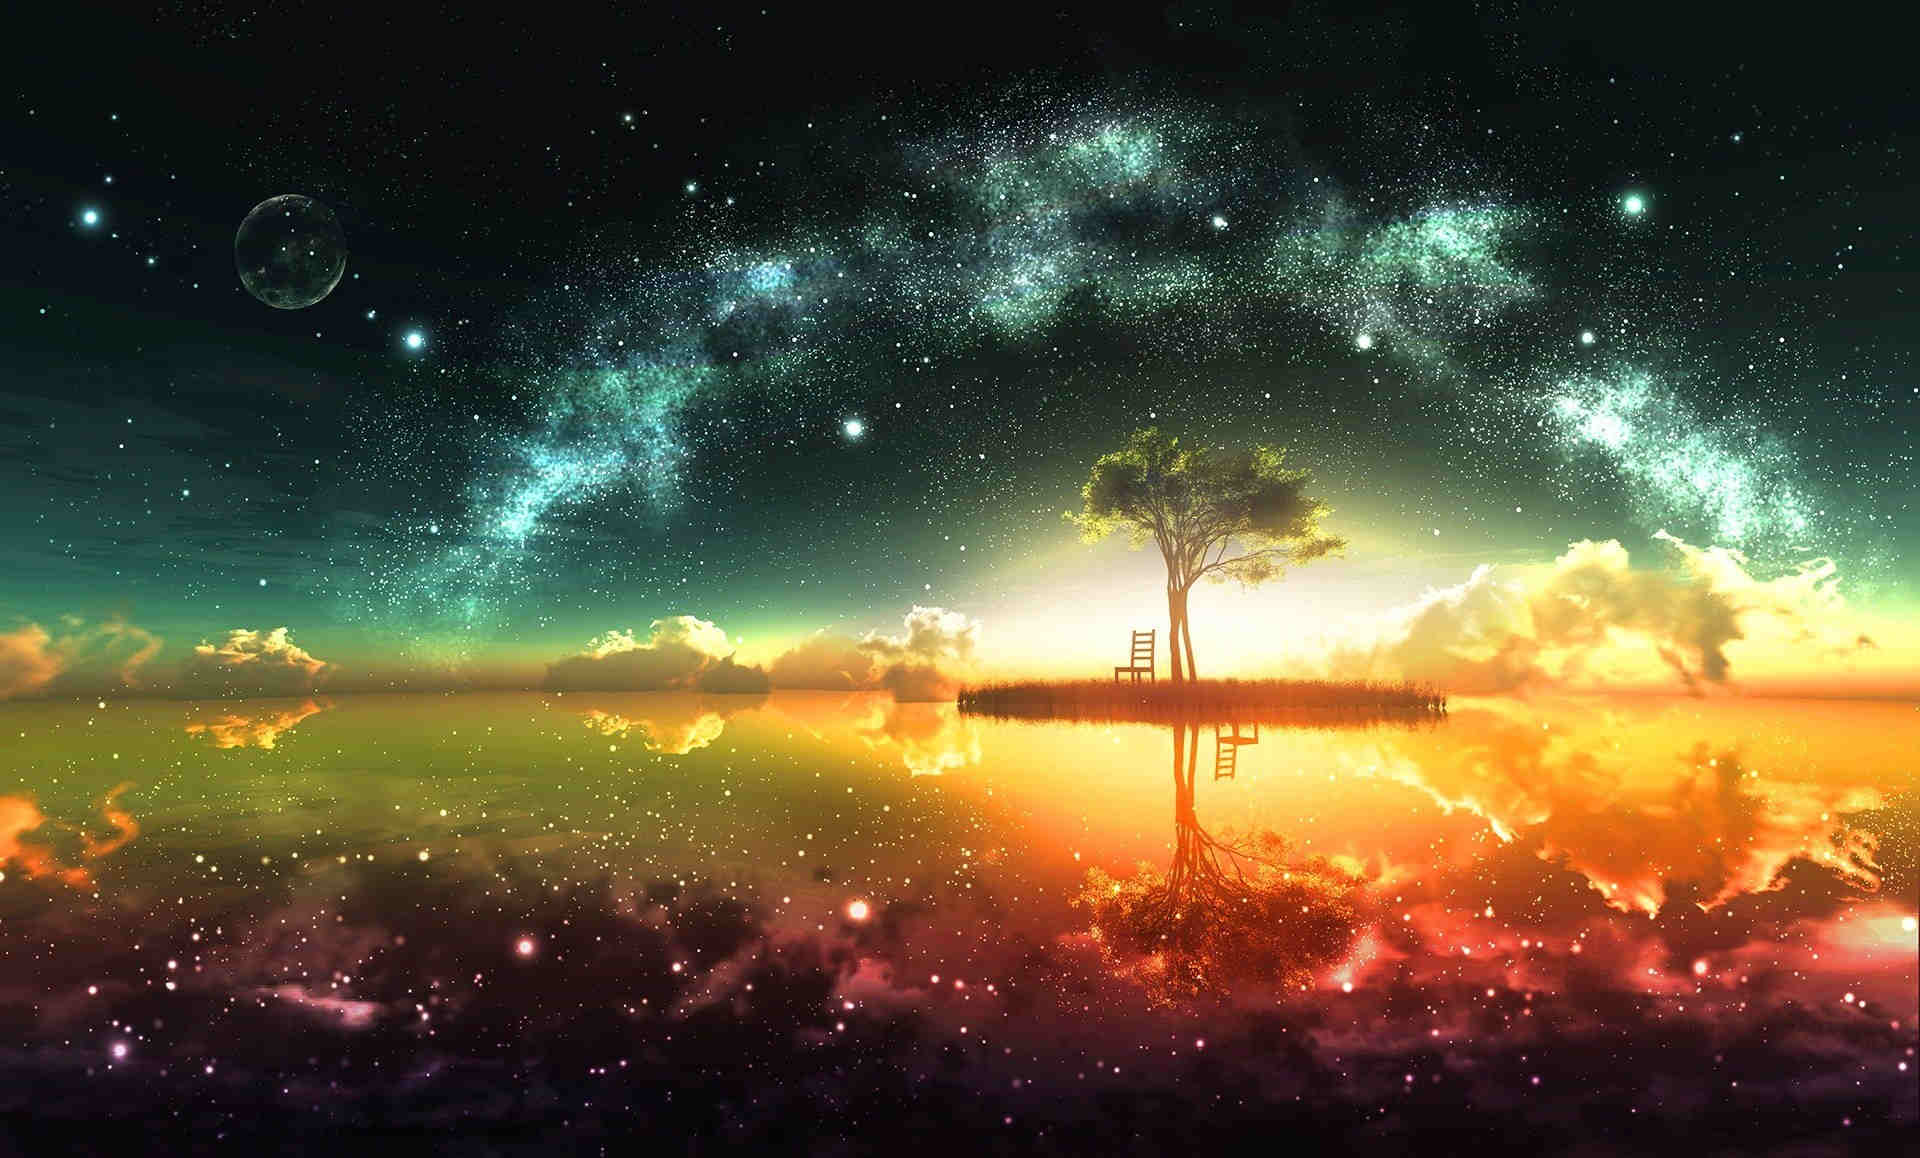 Dreamy Space HD Fantasy Wallpaper